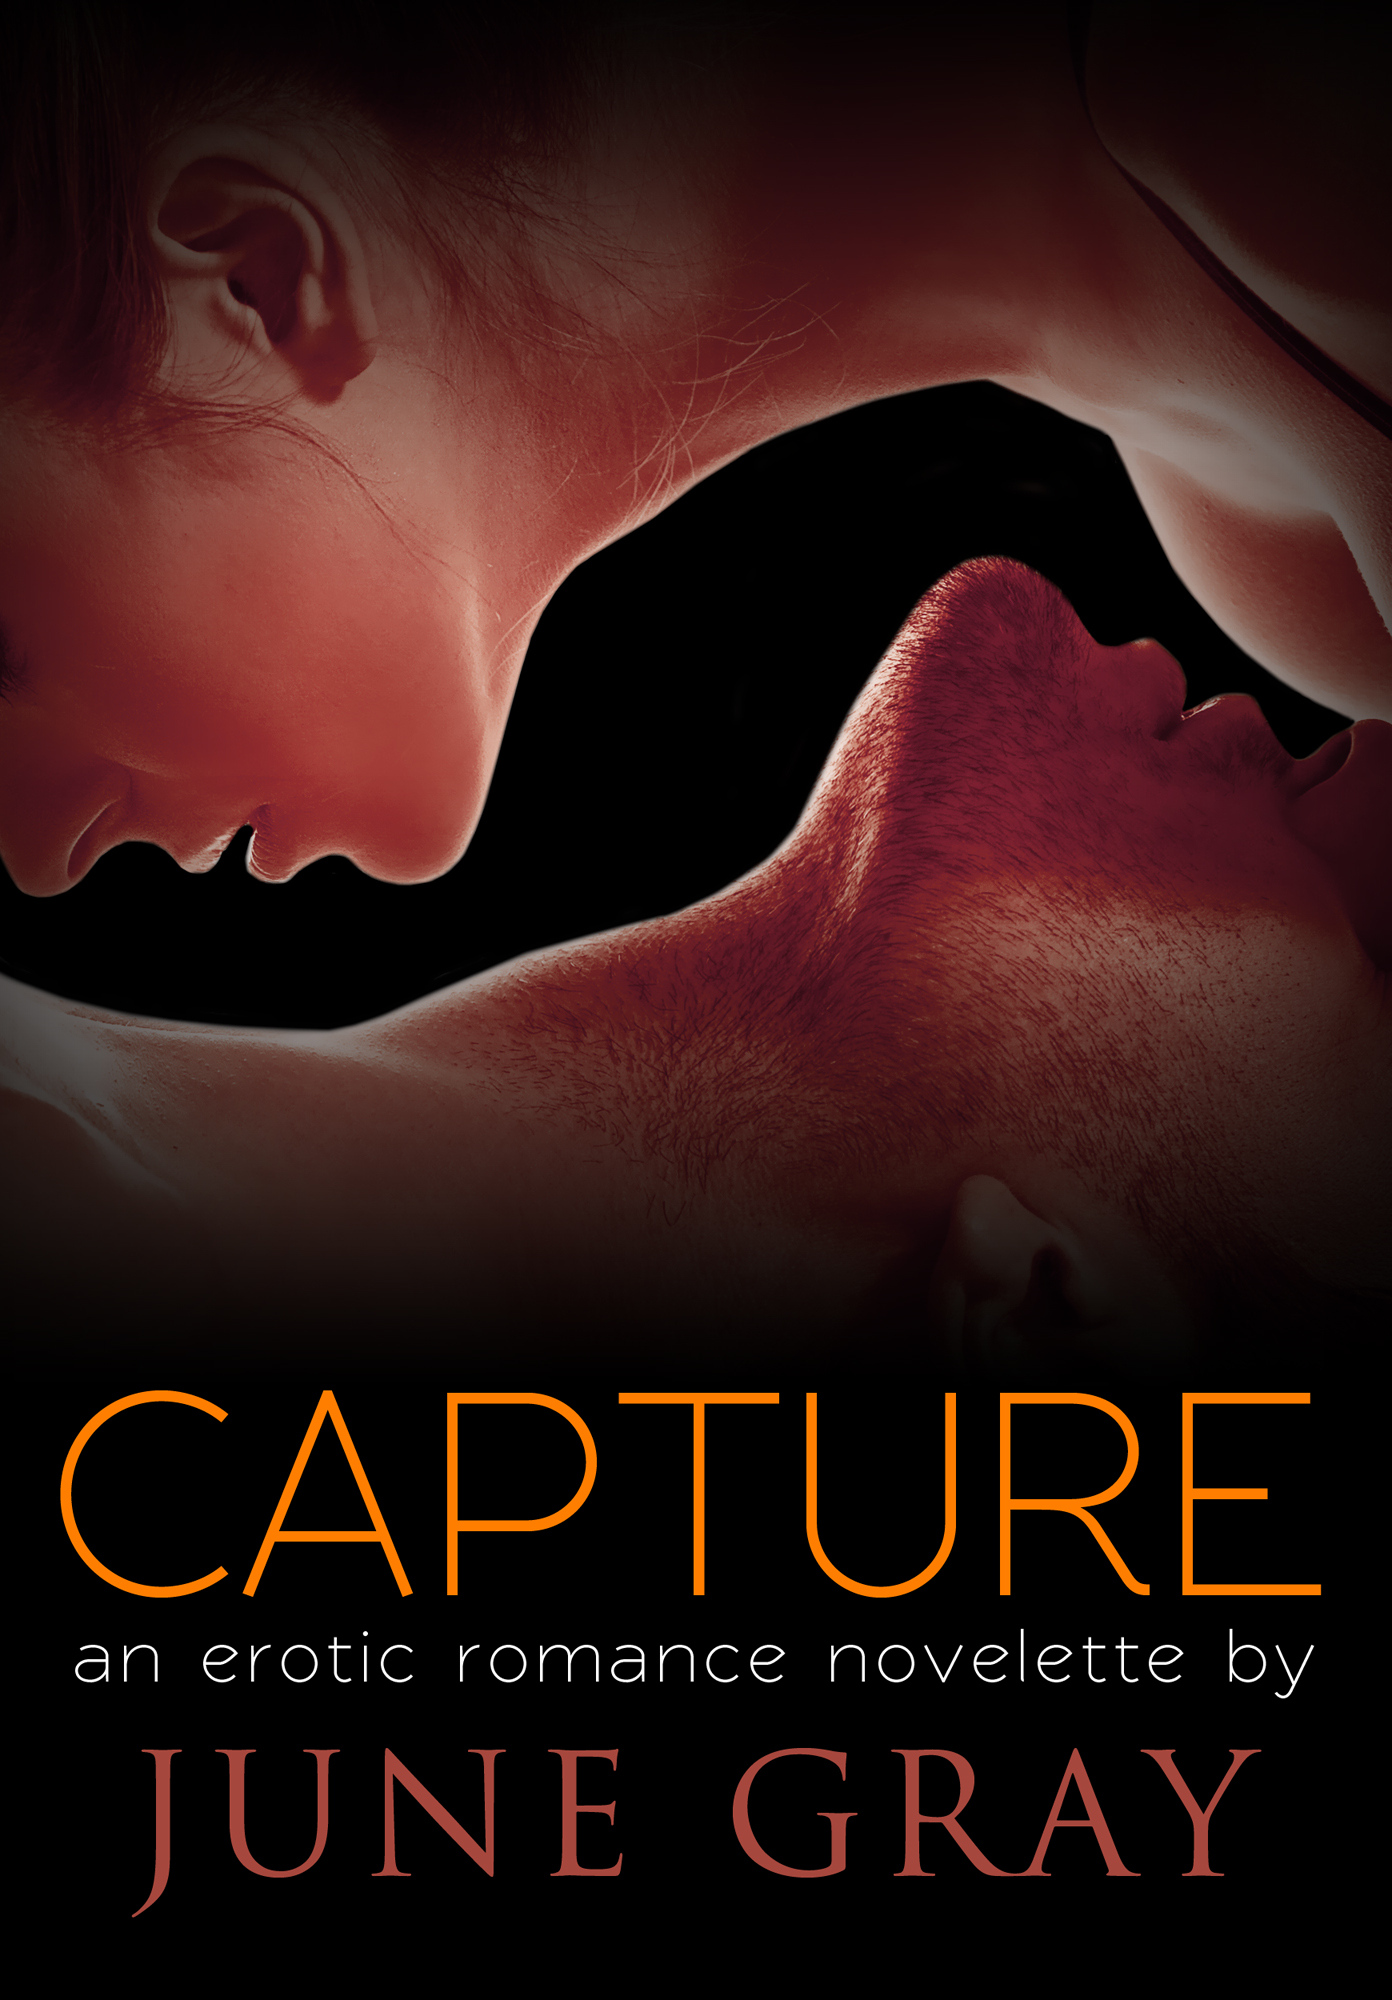 CAPTURE (An Erotic Romance Novelette) By: June Gray